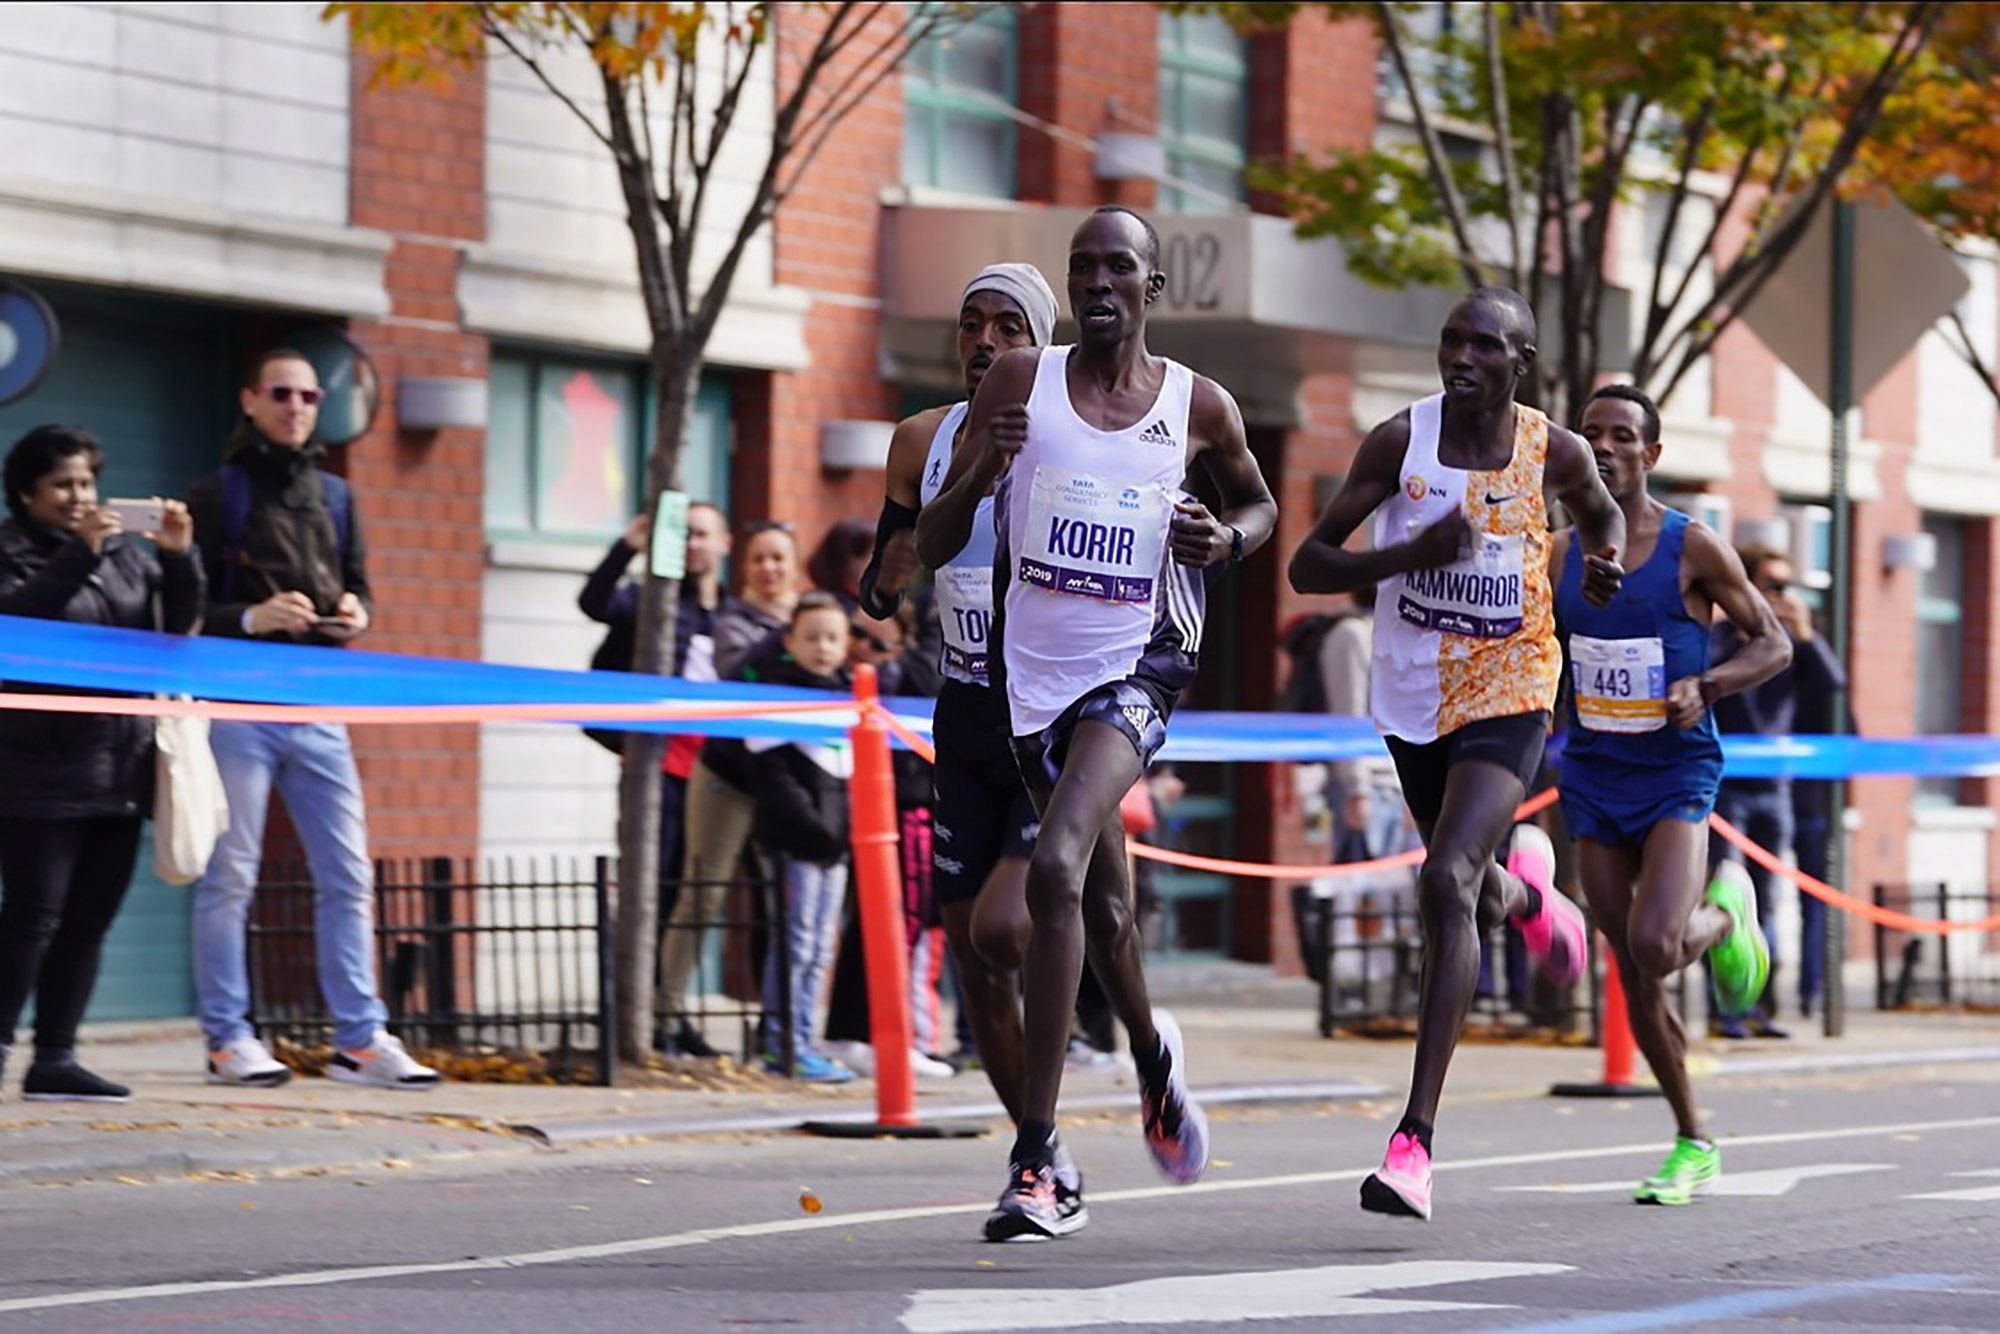 Albert Korir of Kenia, Tamirat Tola of Ethopia, Geoffrey Kamworor of Kenia and Girma Bekele Gebre of Ethiopia during 2019 TCS New York City Marathon, Nov. 3.